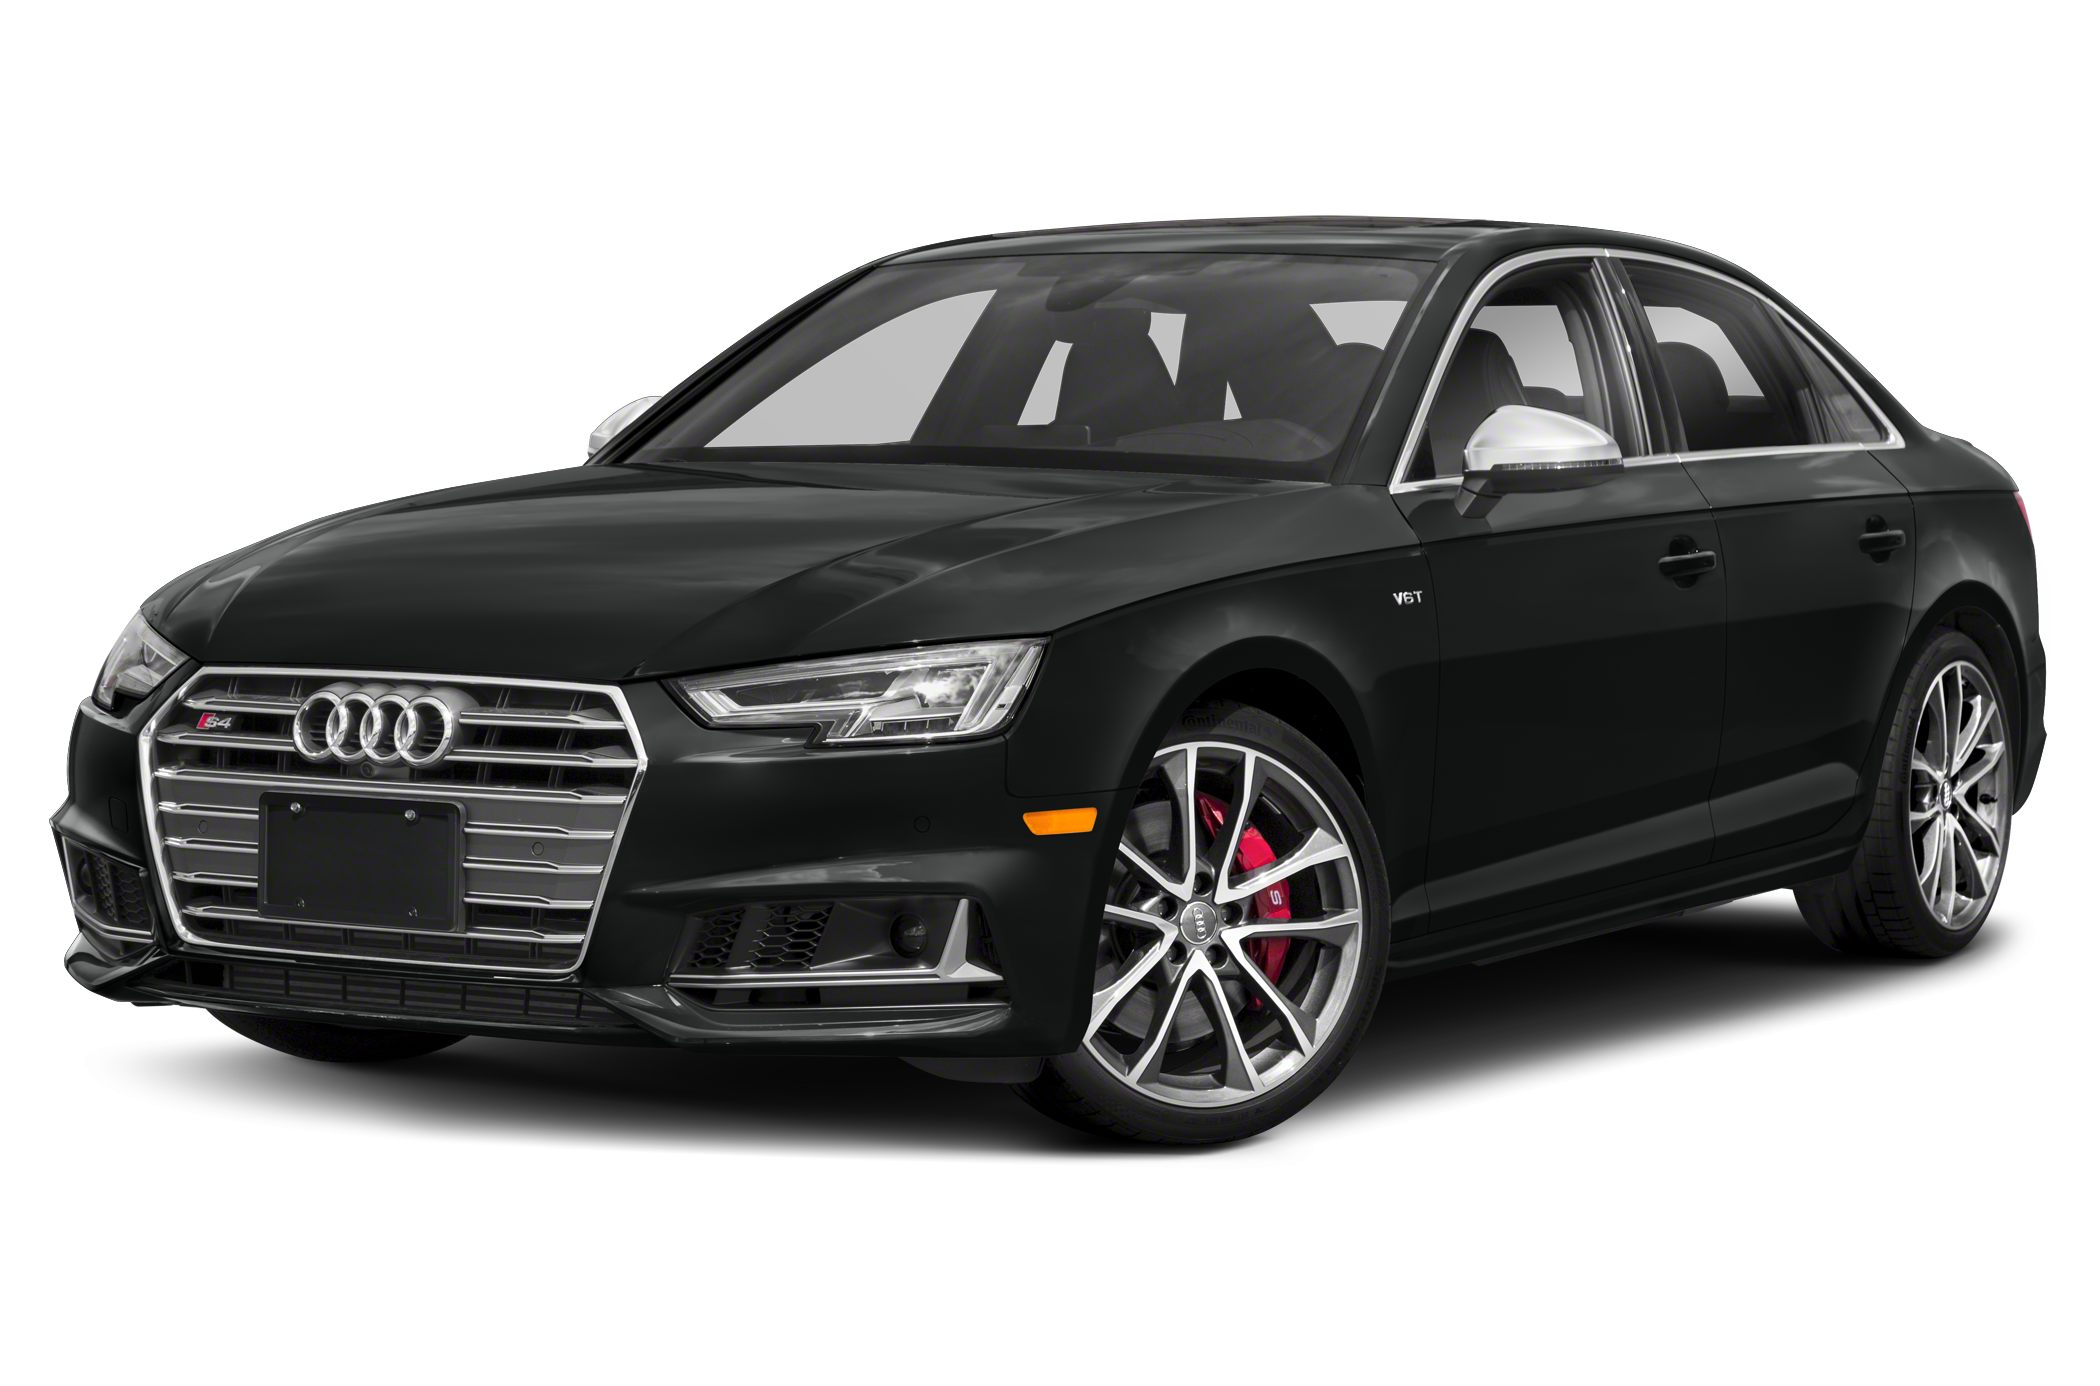 2018 Audi S4 Reviews, Specs and Prices | Cars.com